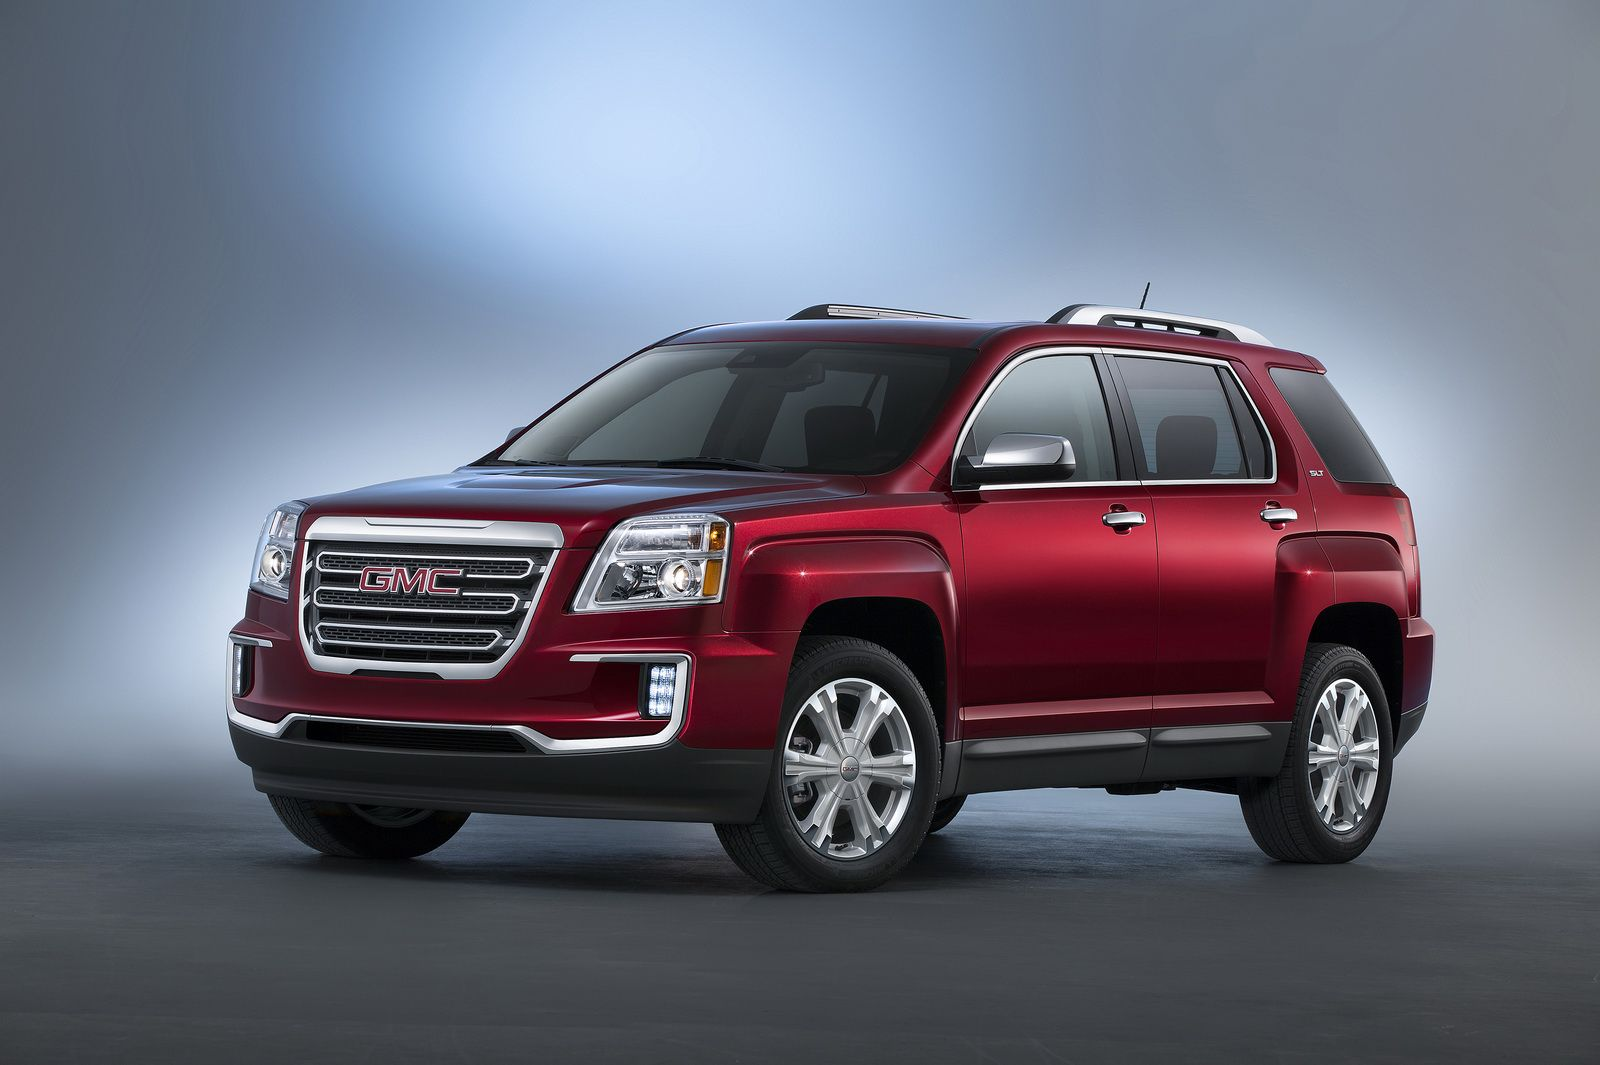 New Chevrolet Traverse And Gmc Terrain To Launch In Detroit Most Reliable Suv Gmc Terrain Compact Suv